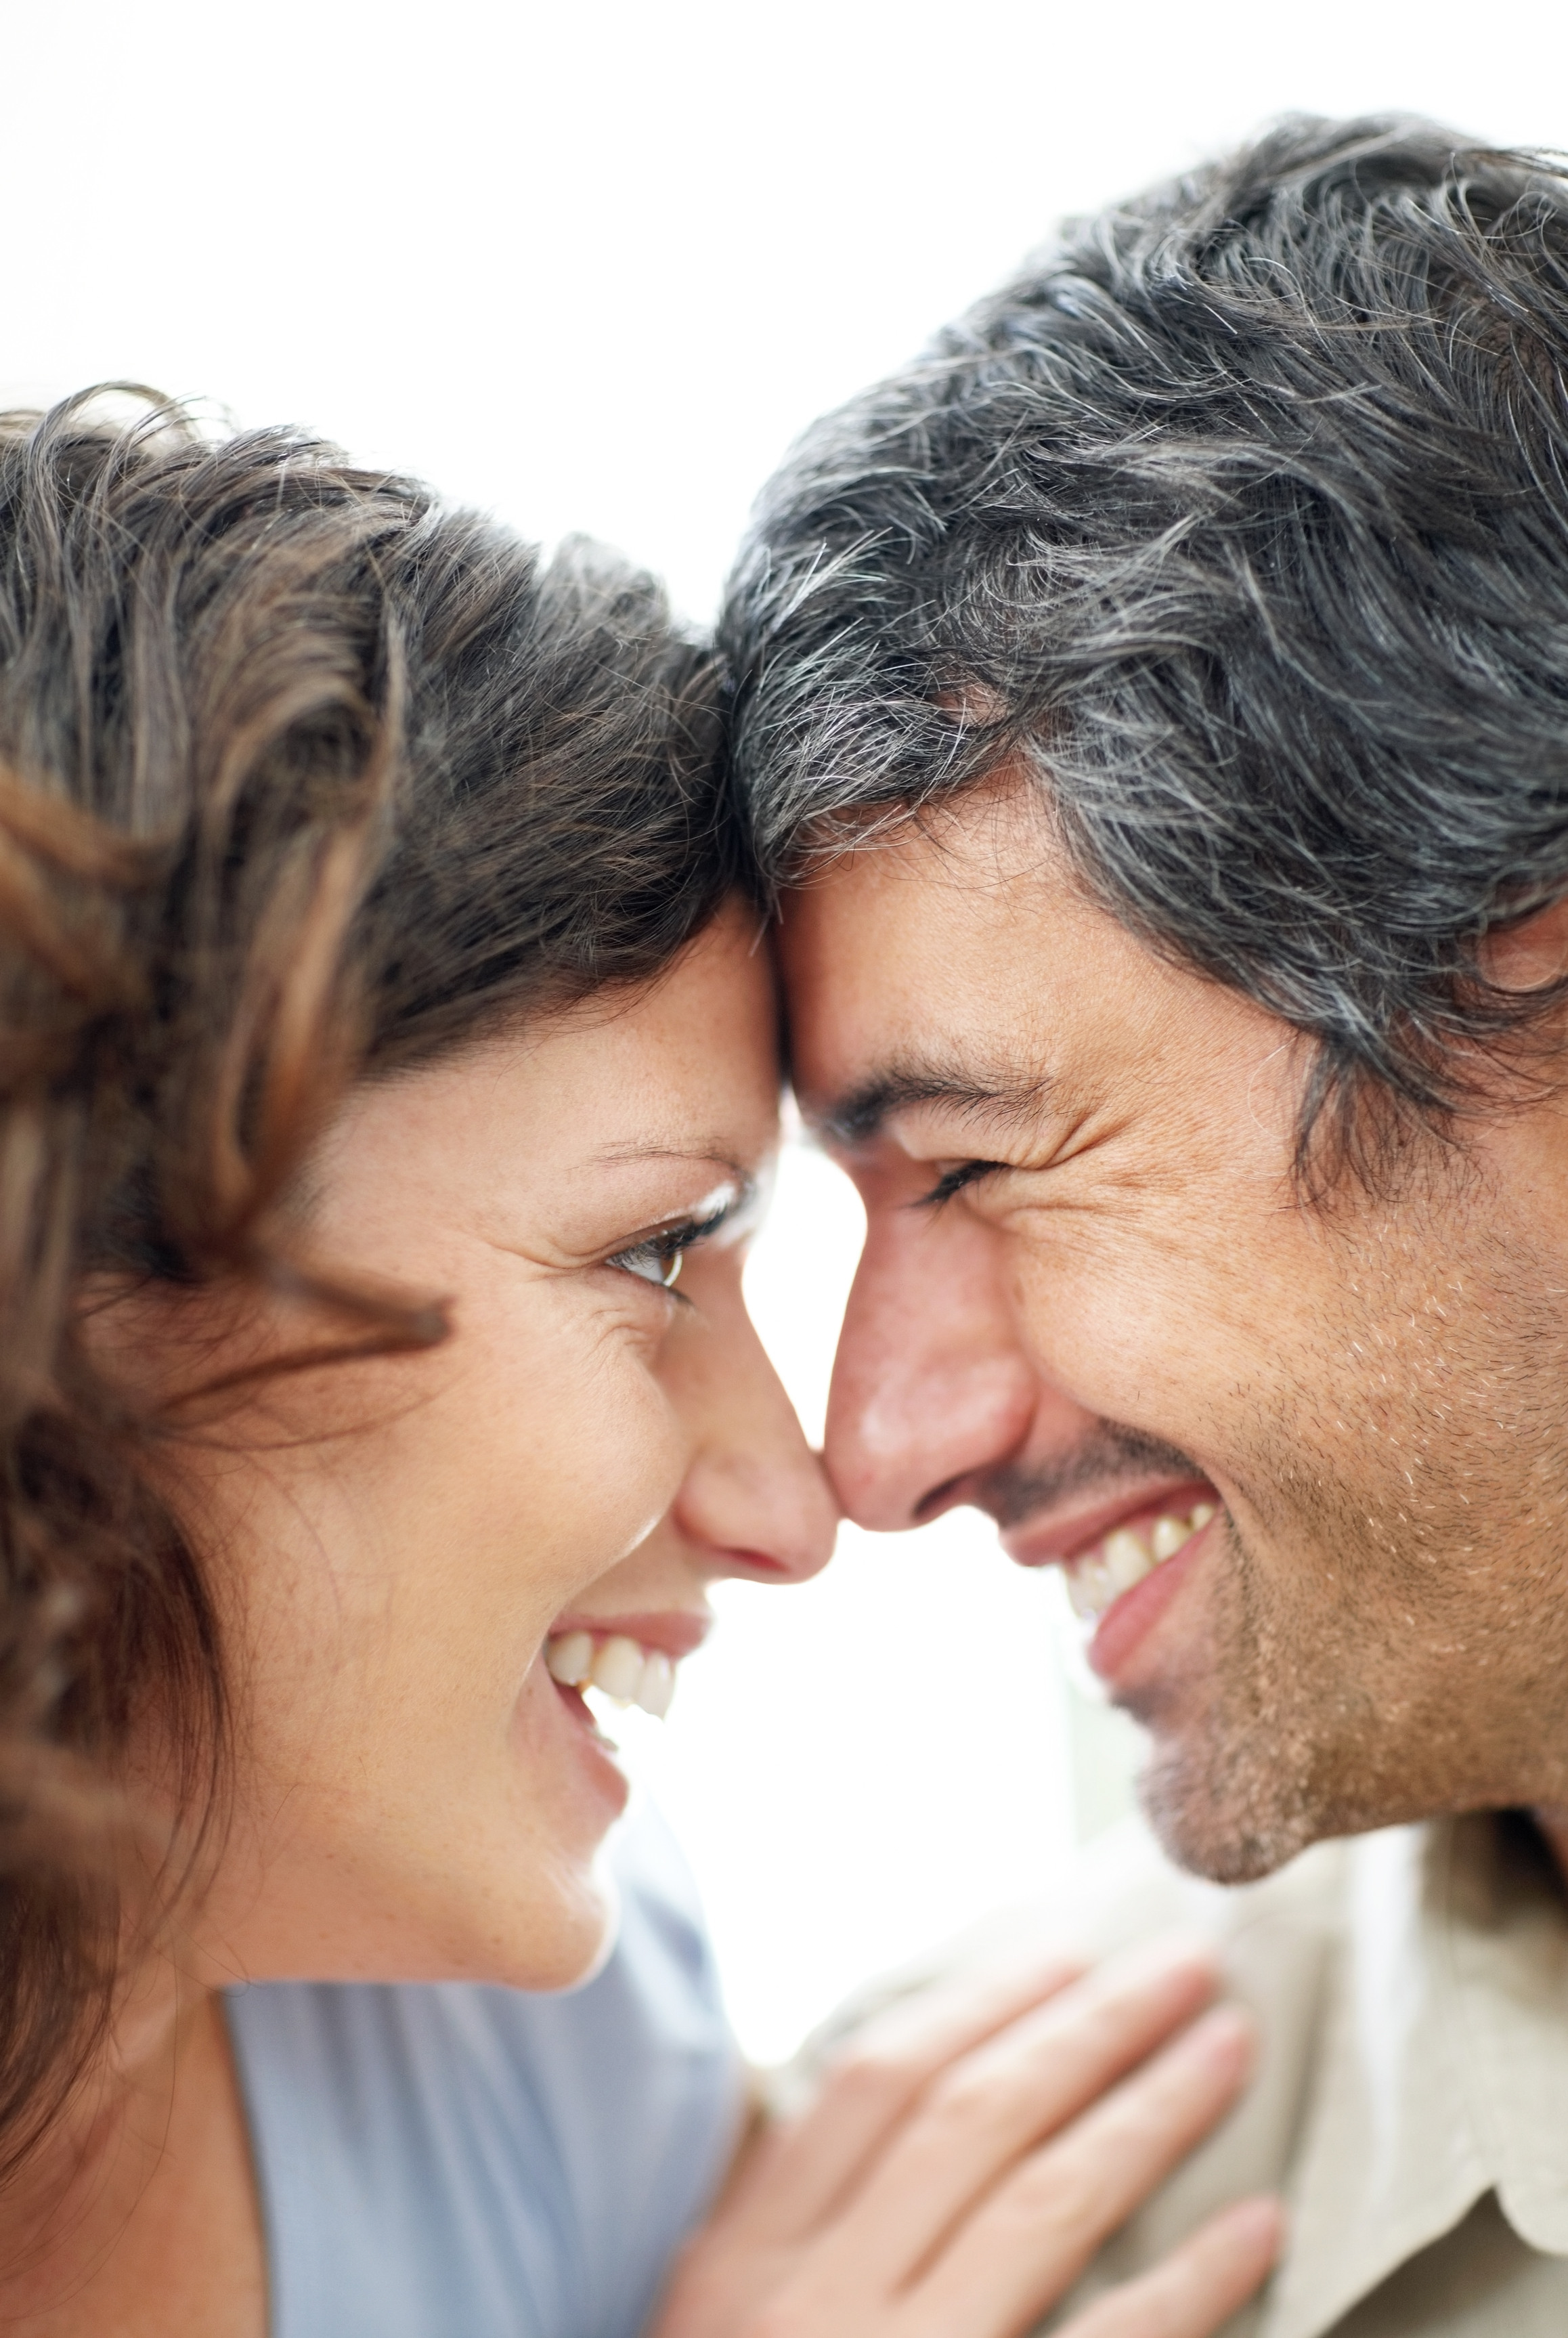 Initial Couples Herbal Assessment